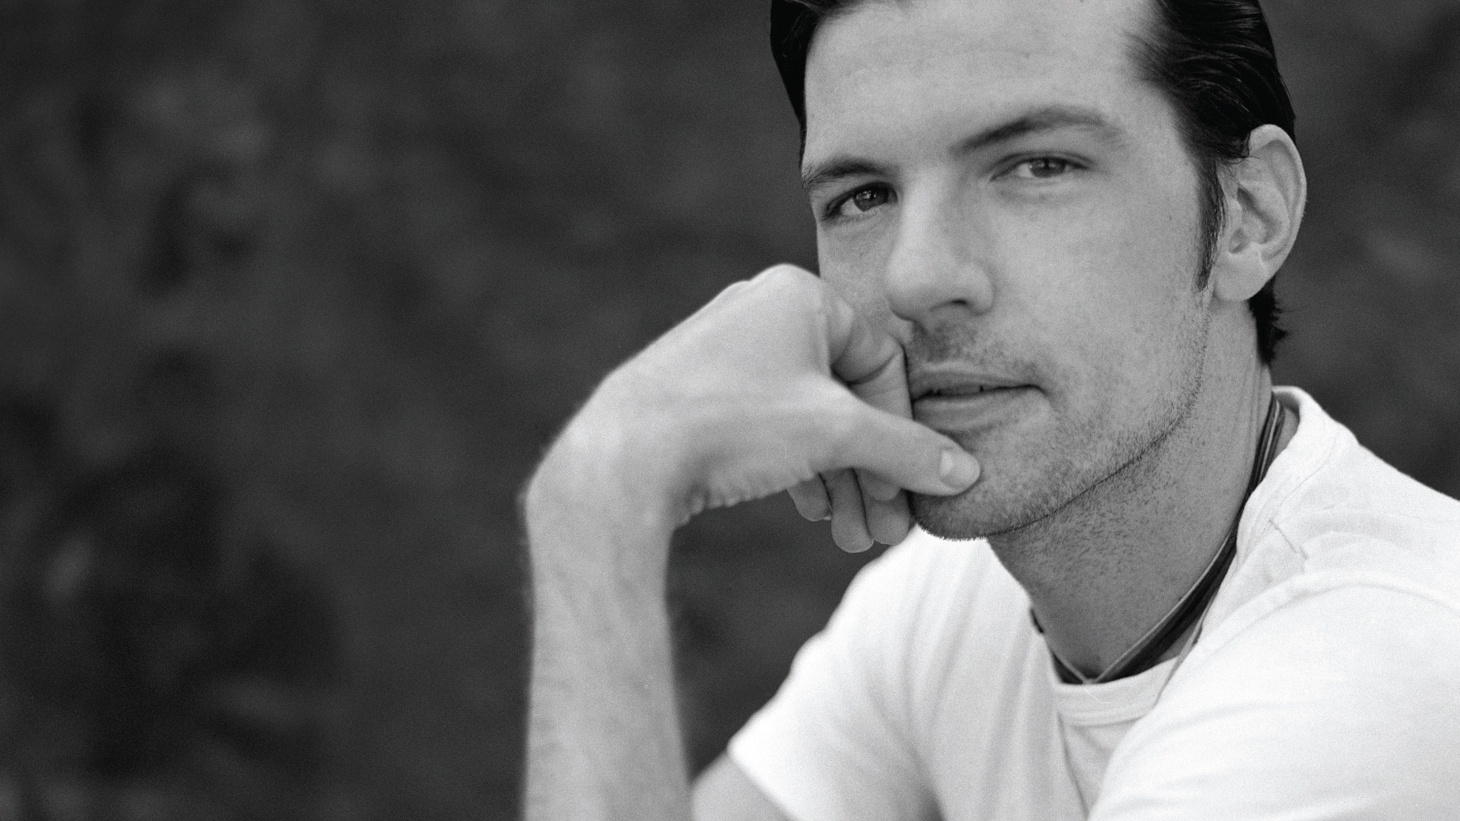 It's been a dozen years since Timothy Seth Avett released an album under the moniker Darling, an alias that in his younger days helped him through the bumpy road into manhood.